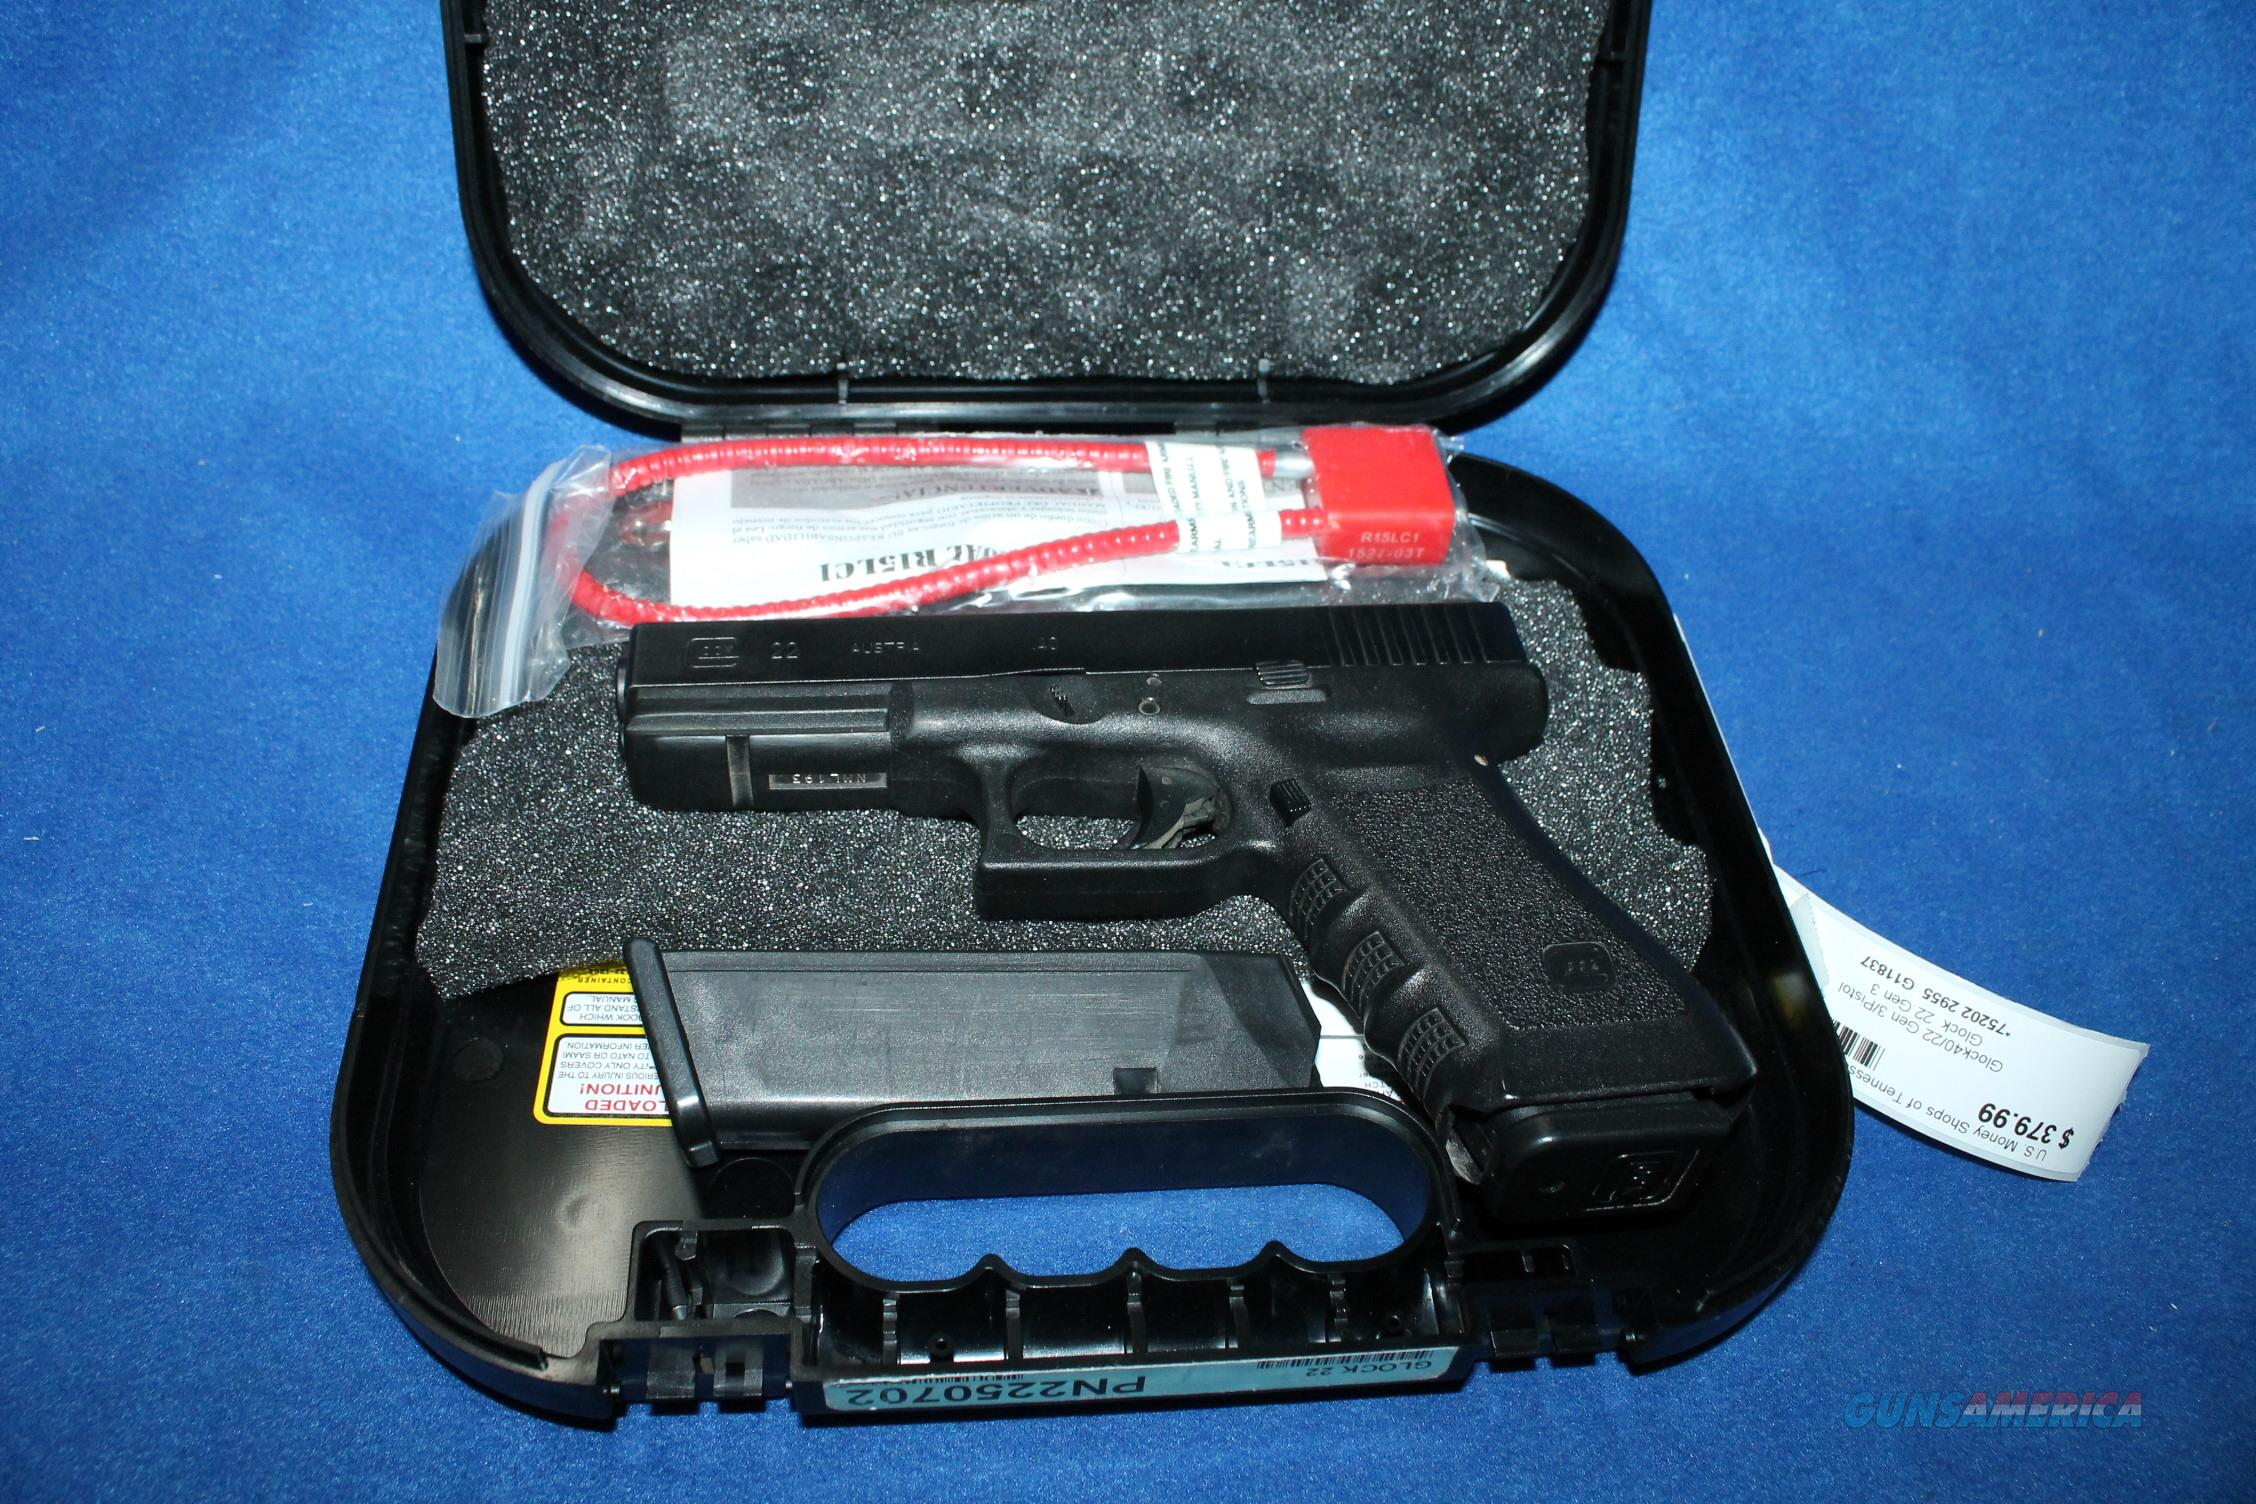 Glock 22 gen 3 .40s&w used two 15rnd mags NO CC FEES NO RESERVE  Guns > Pistols > Glock Pistols > 22